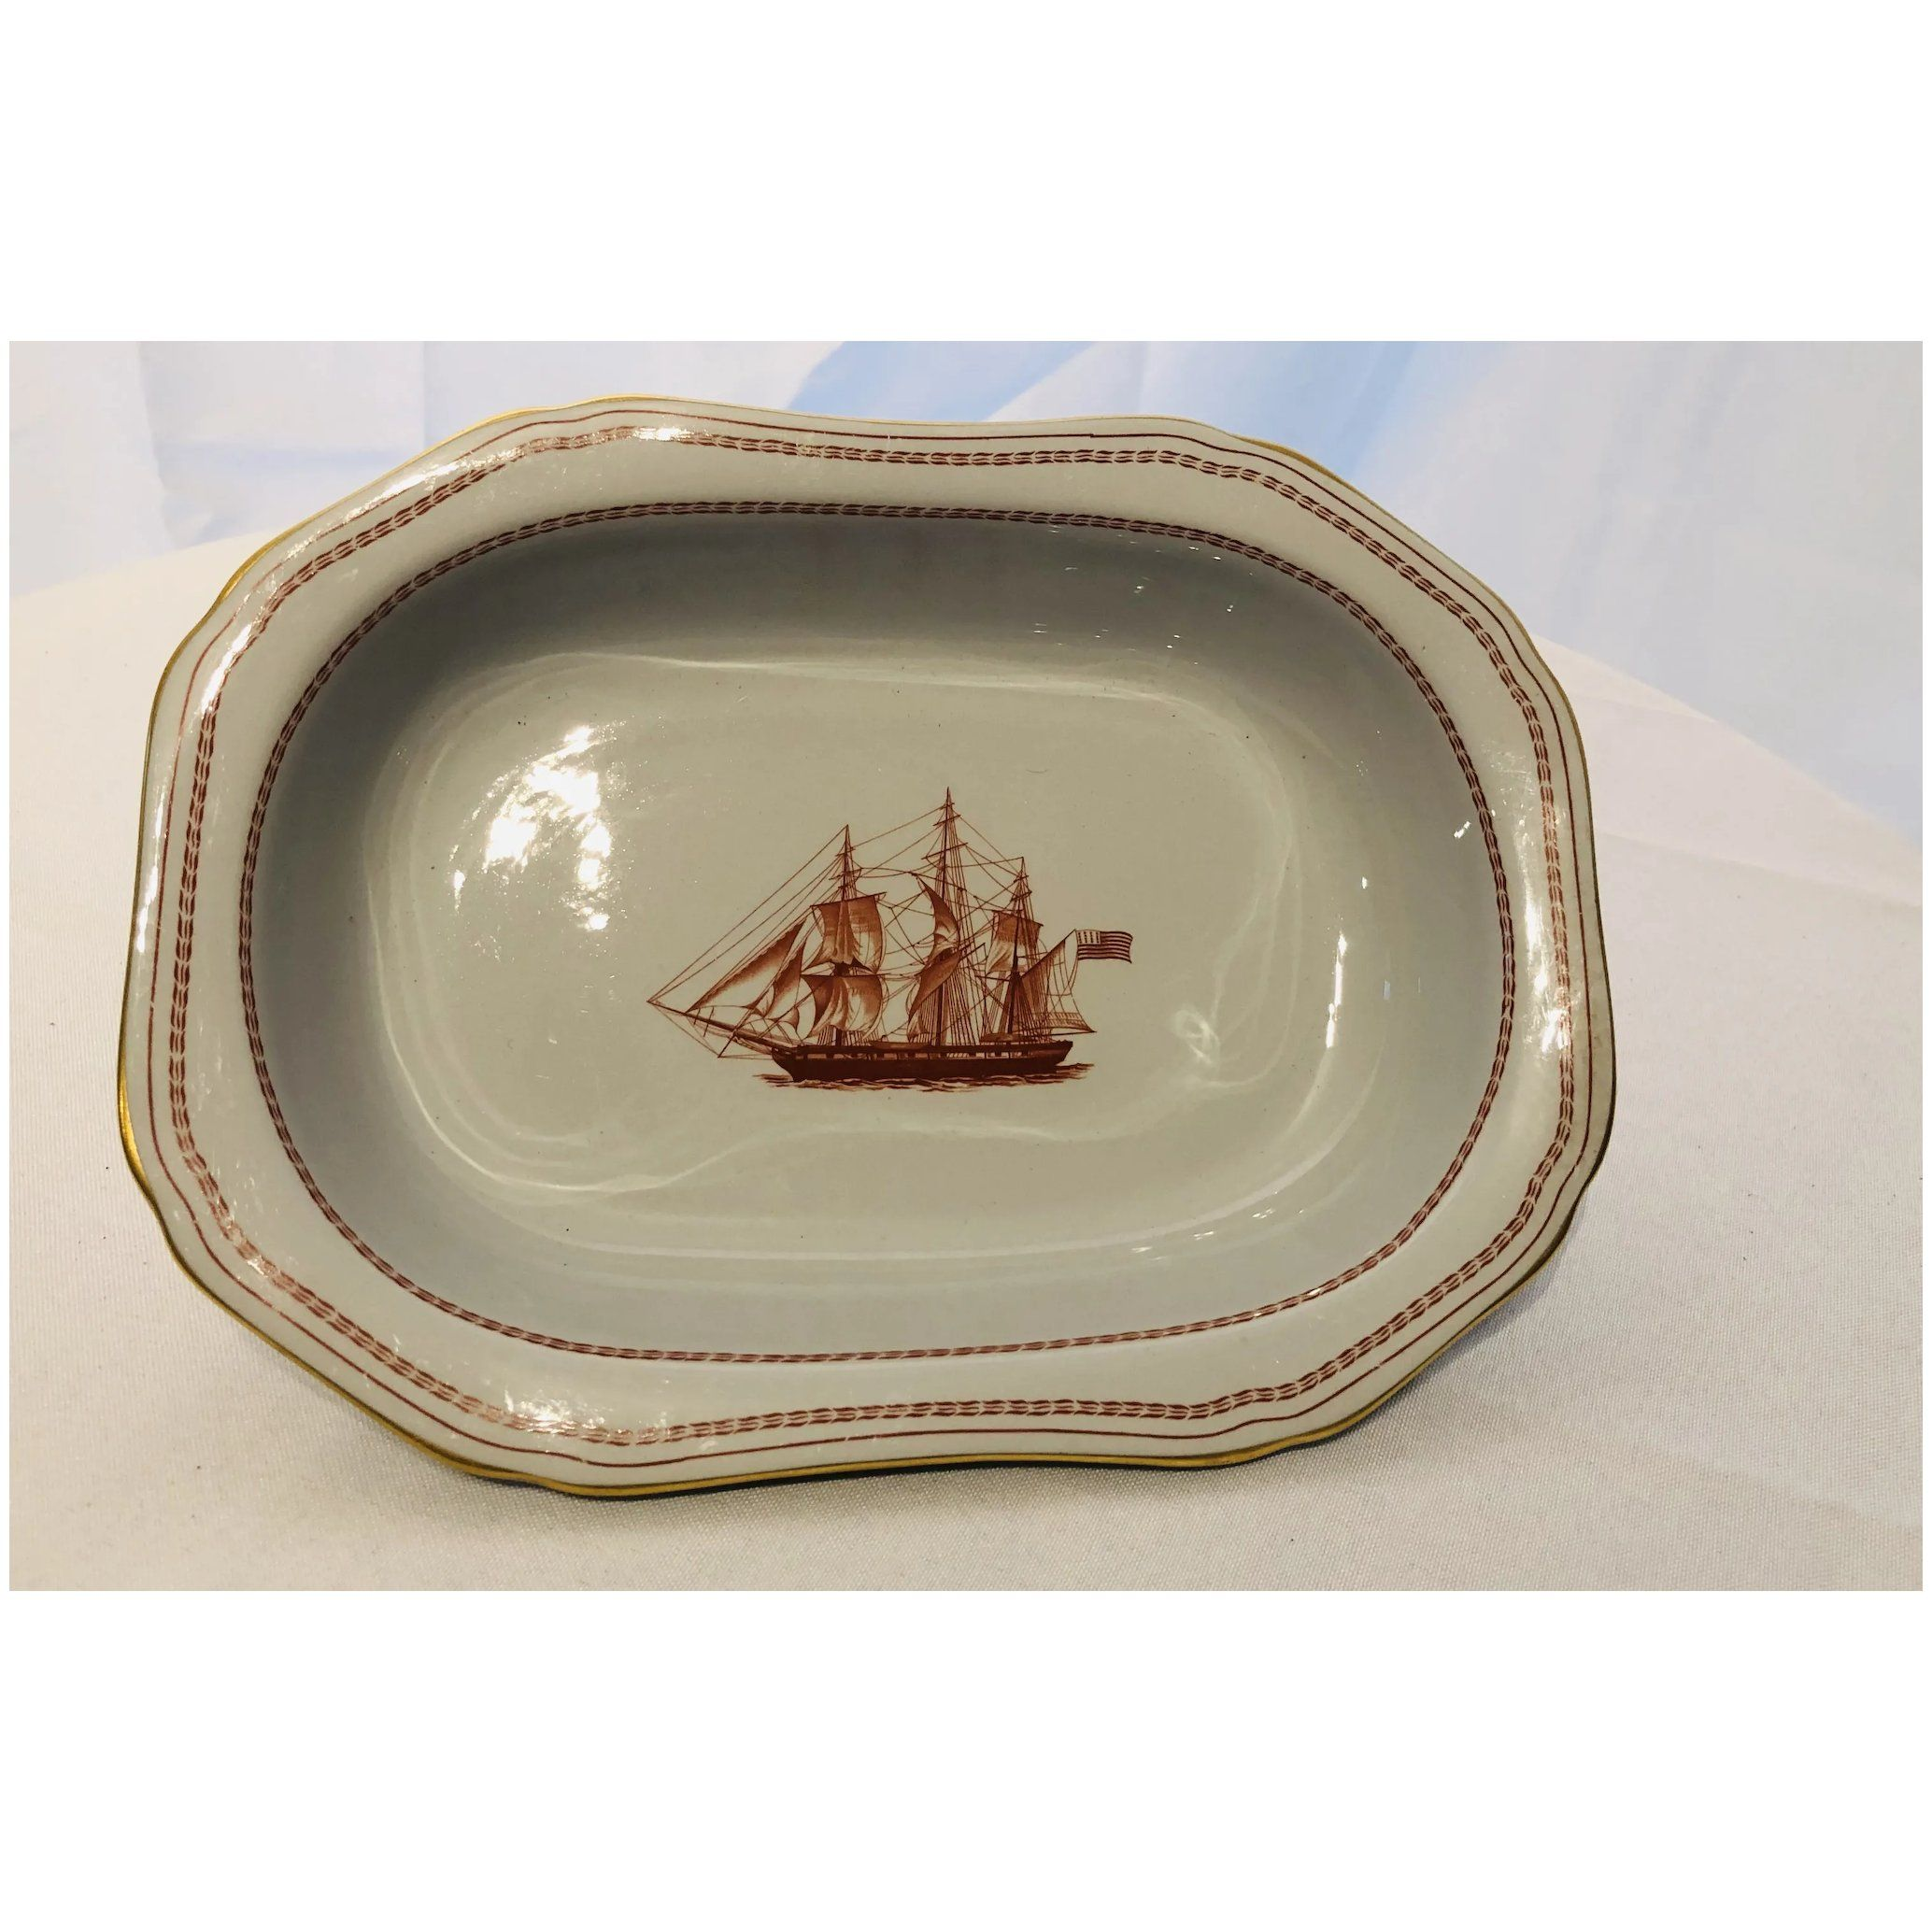 Spode Trade Winds Red (Gold Trim) Large Oval Bowl Ships